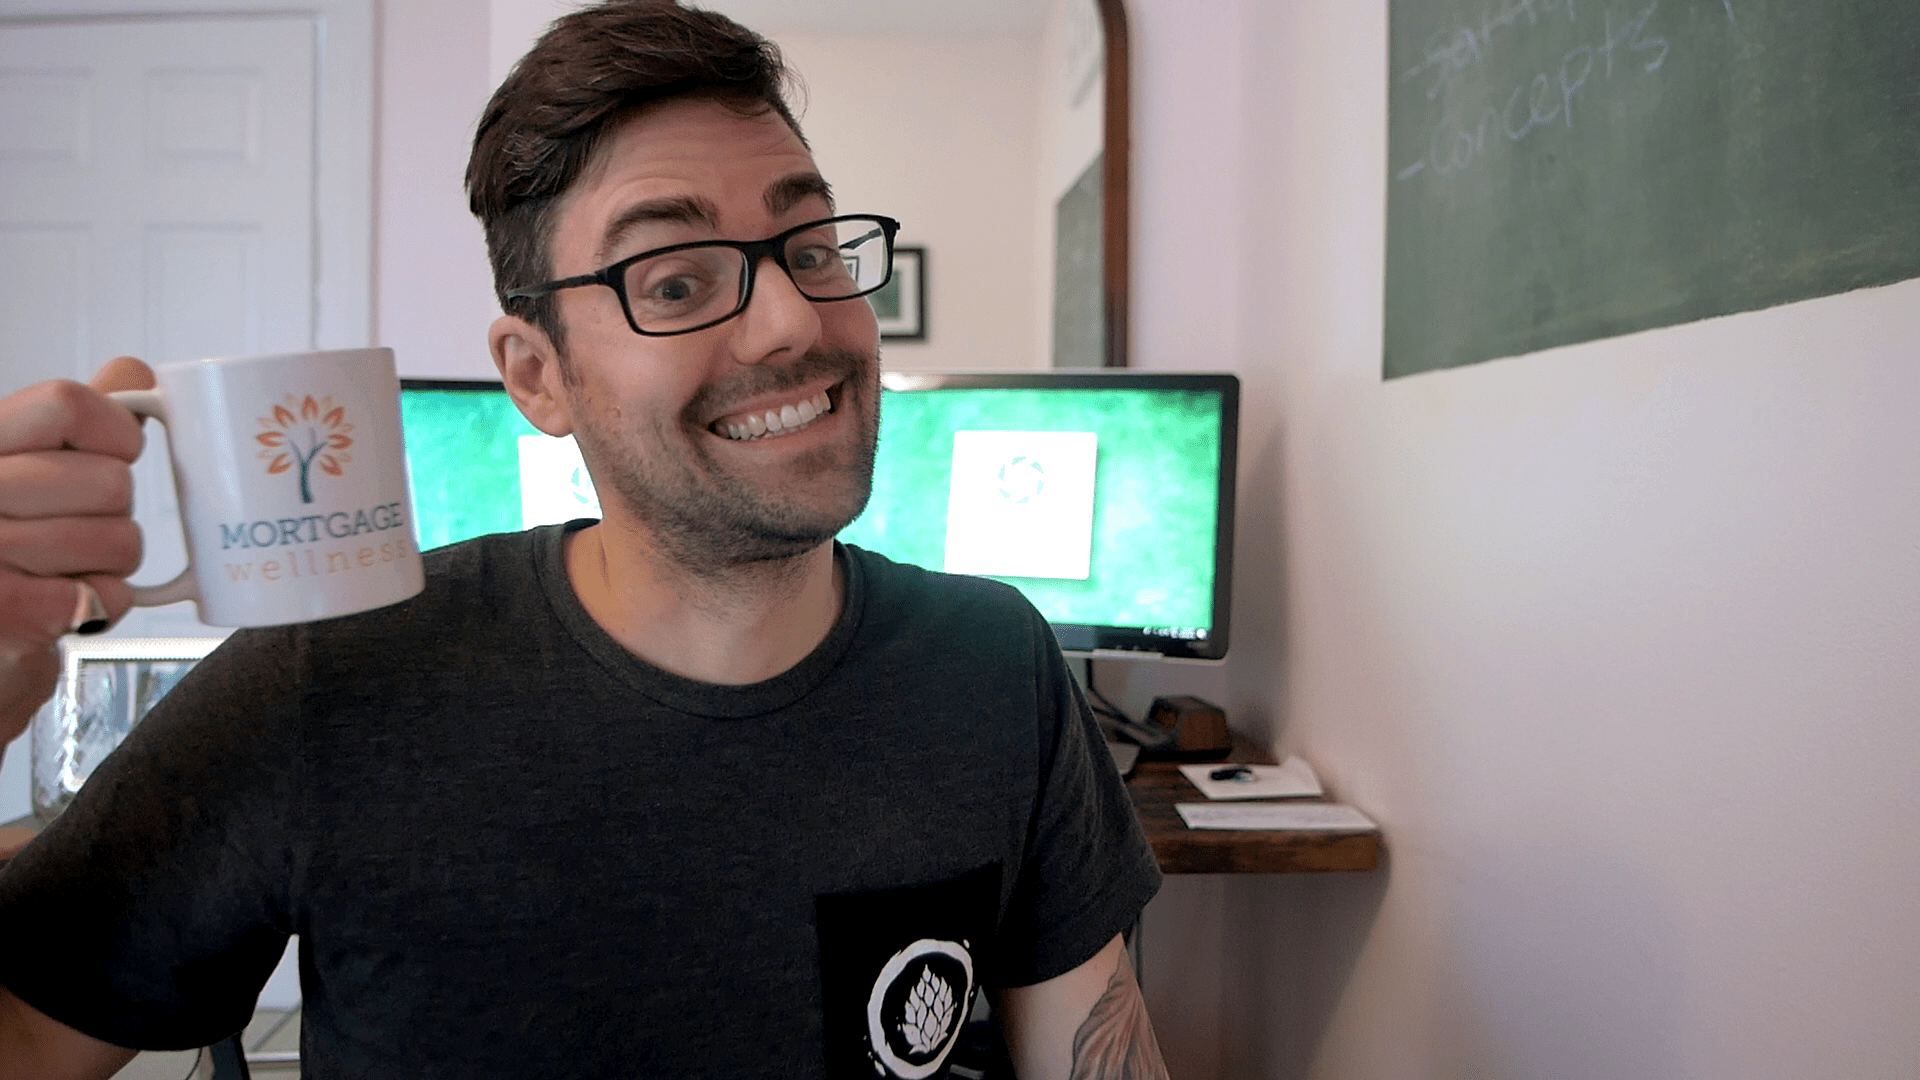 Happy Freakin' Monday Ep 6 – Promoting Others